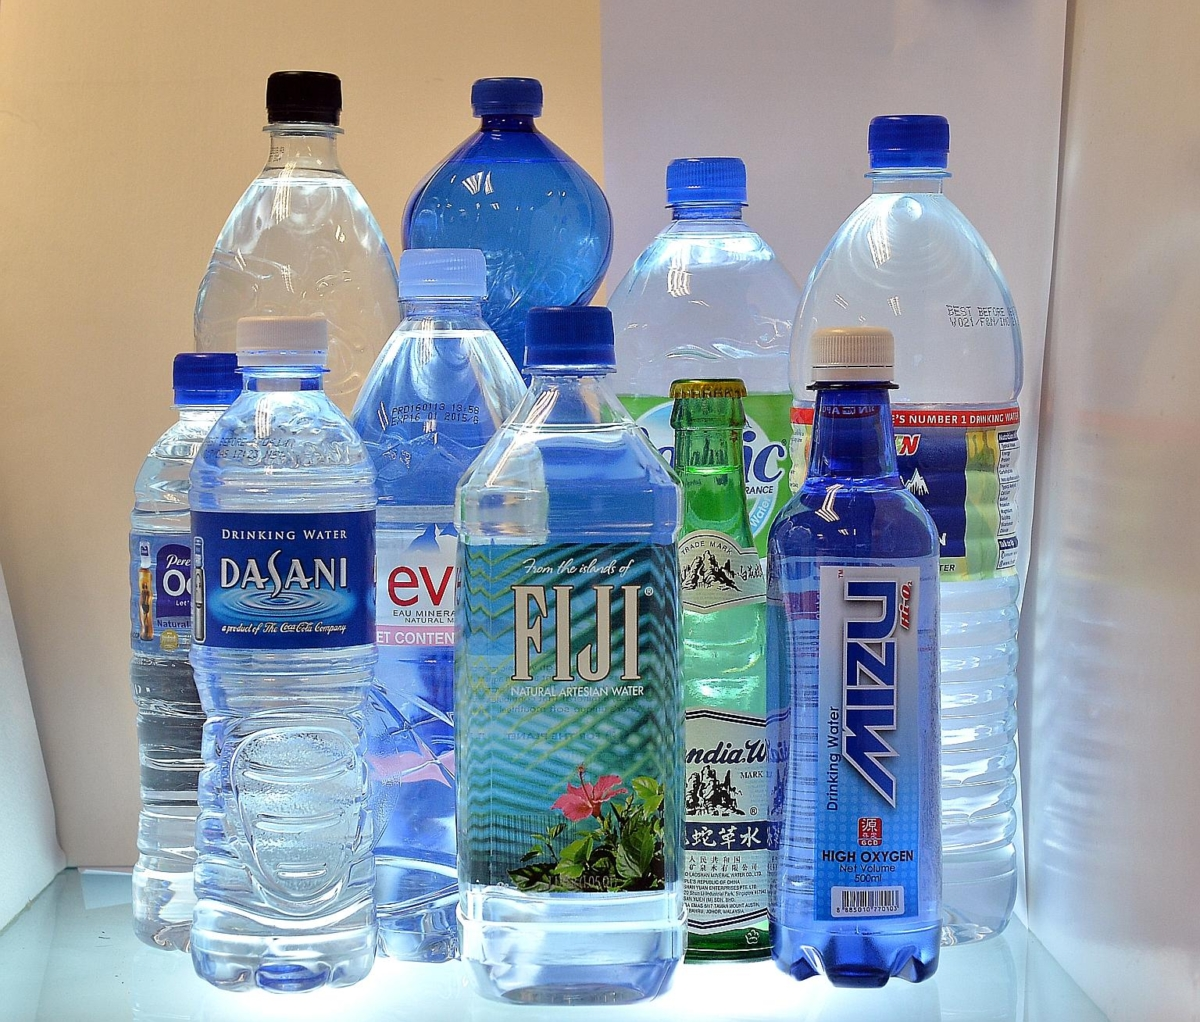 15db53bc05 The World's Top 15 Bottled Waters and How To Pick One to Drink ...